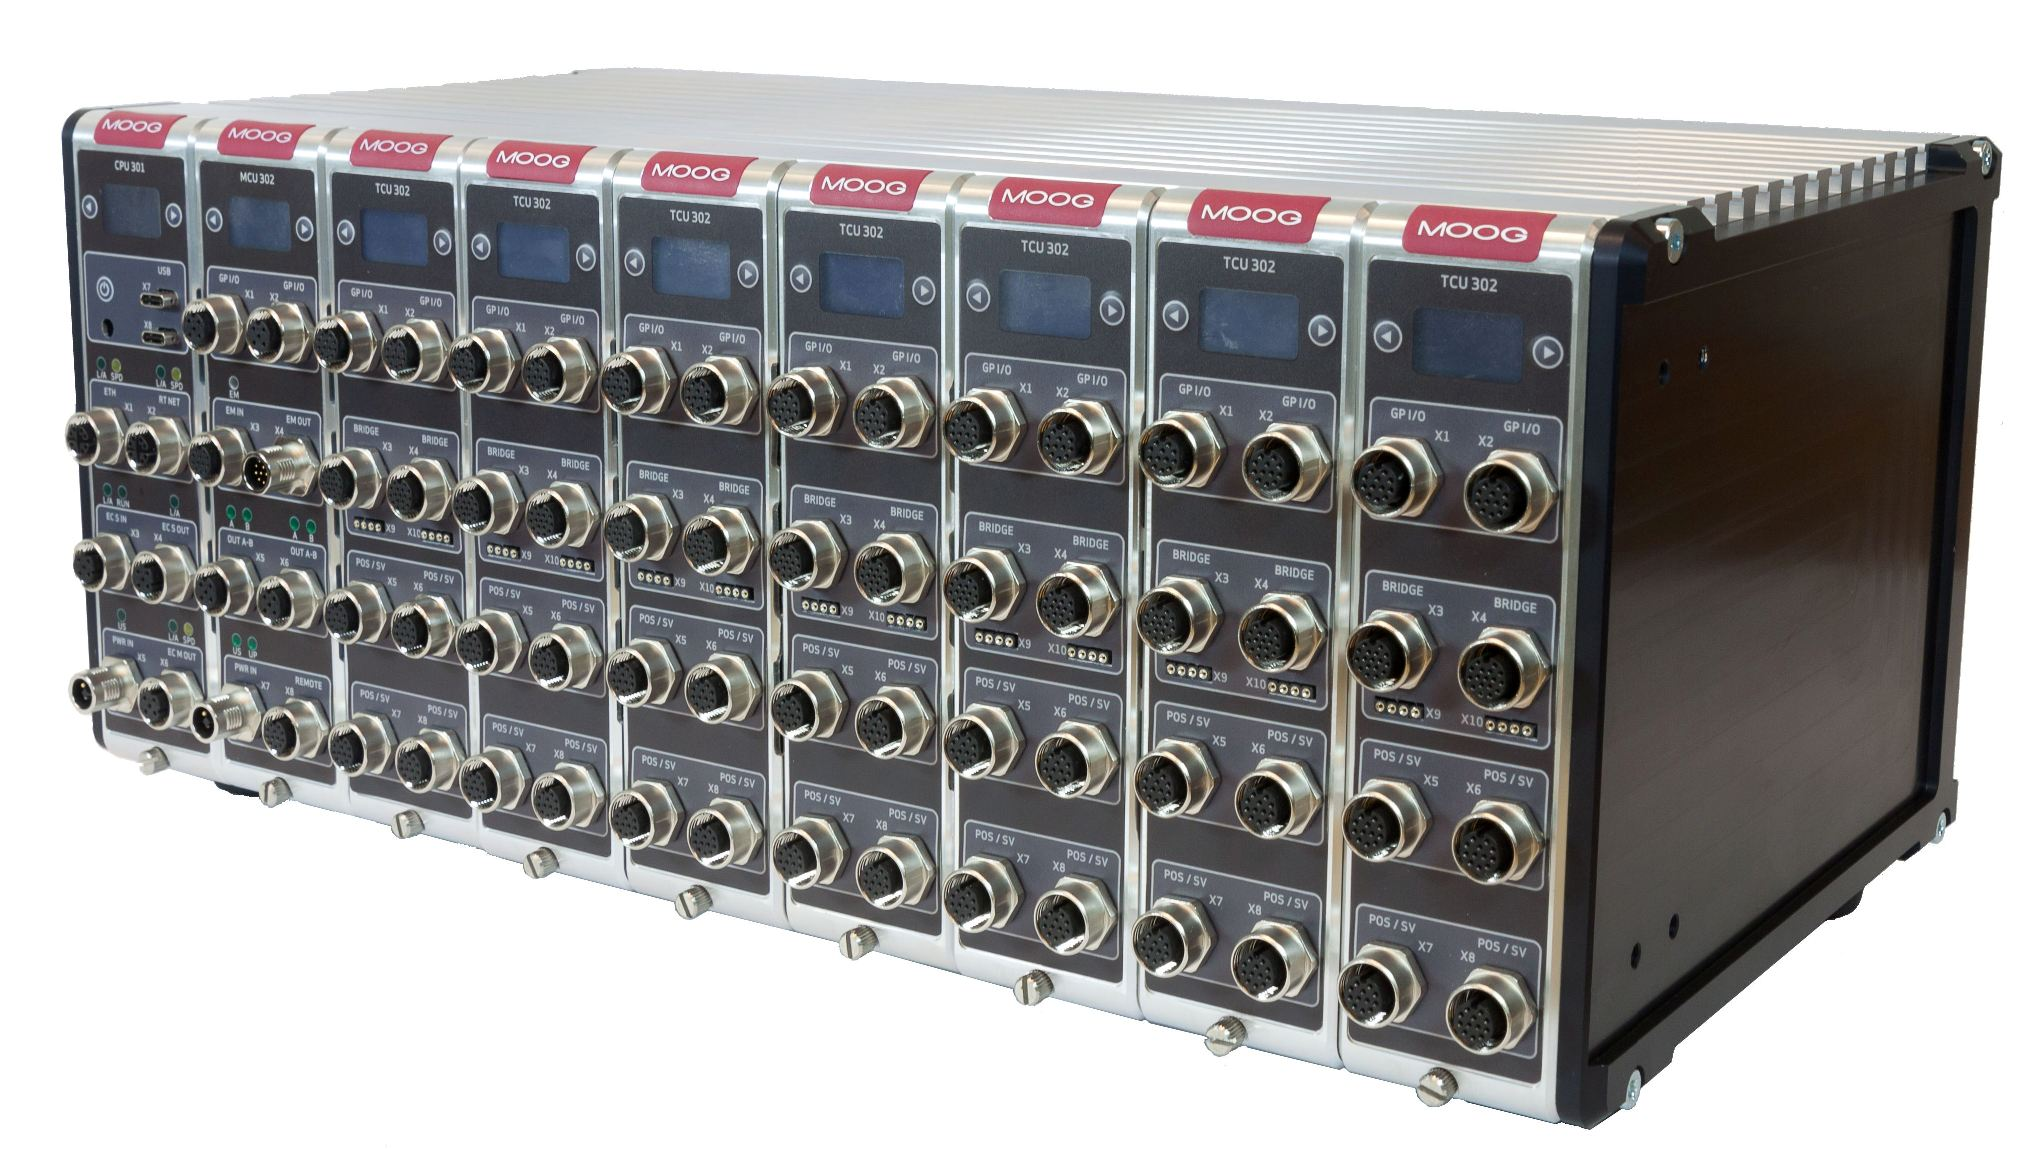 Modular system for controlling hydraulic and electrical test systems